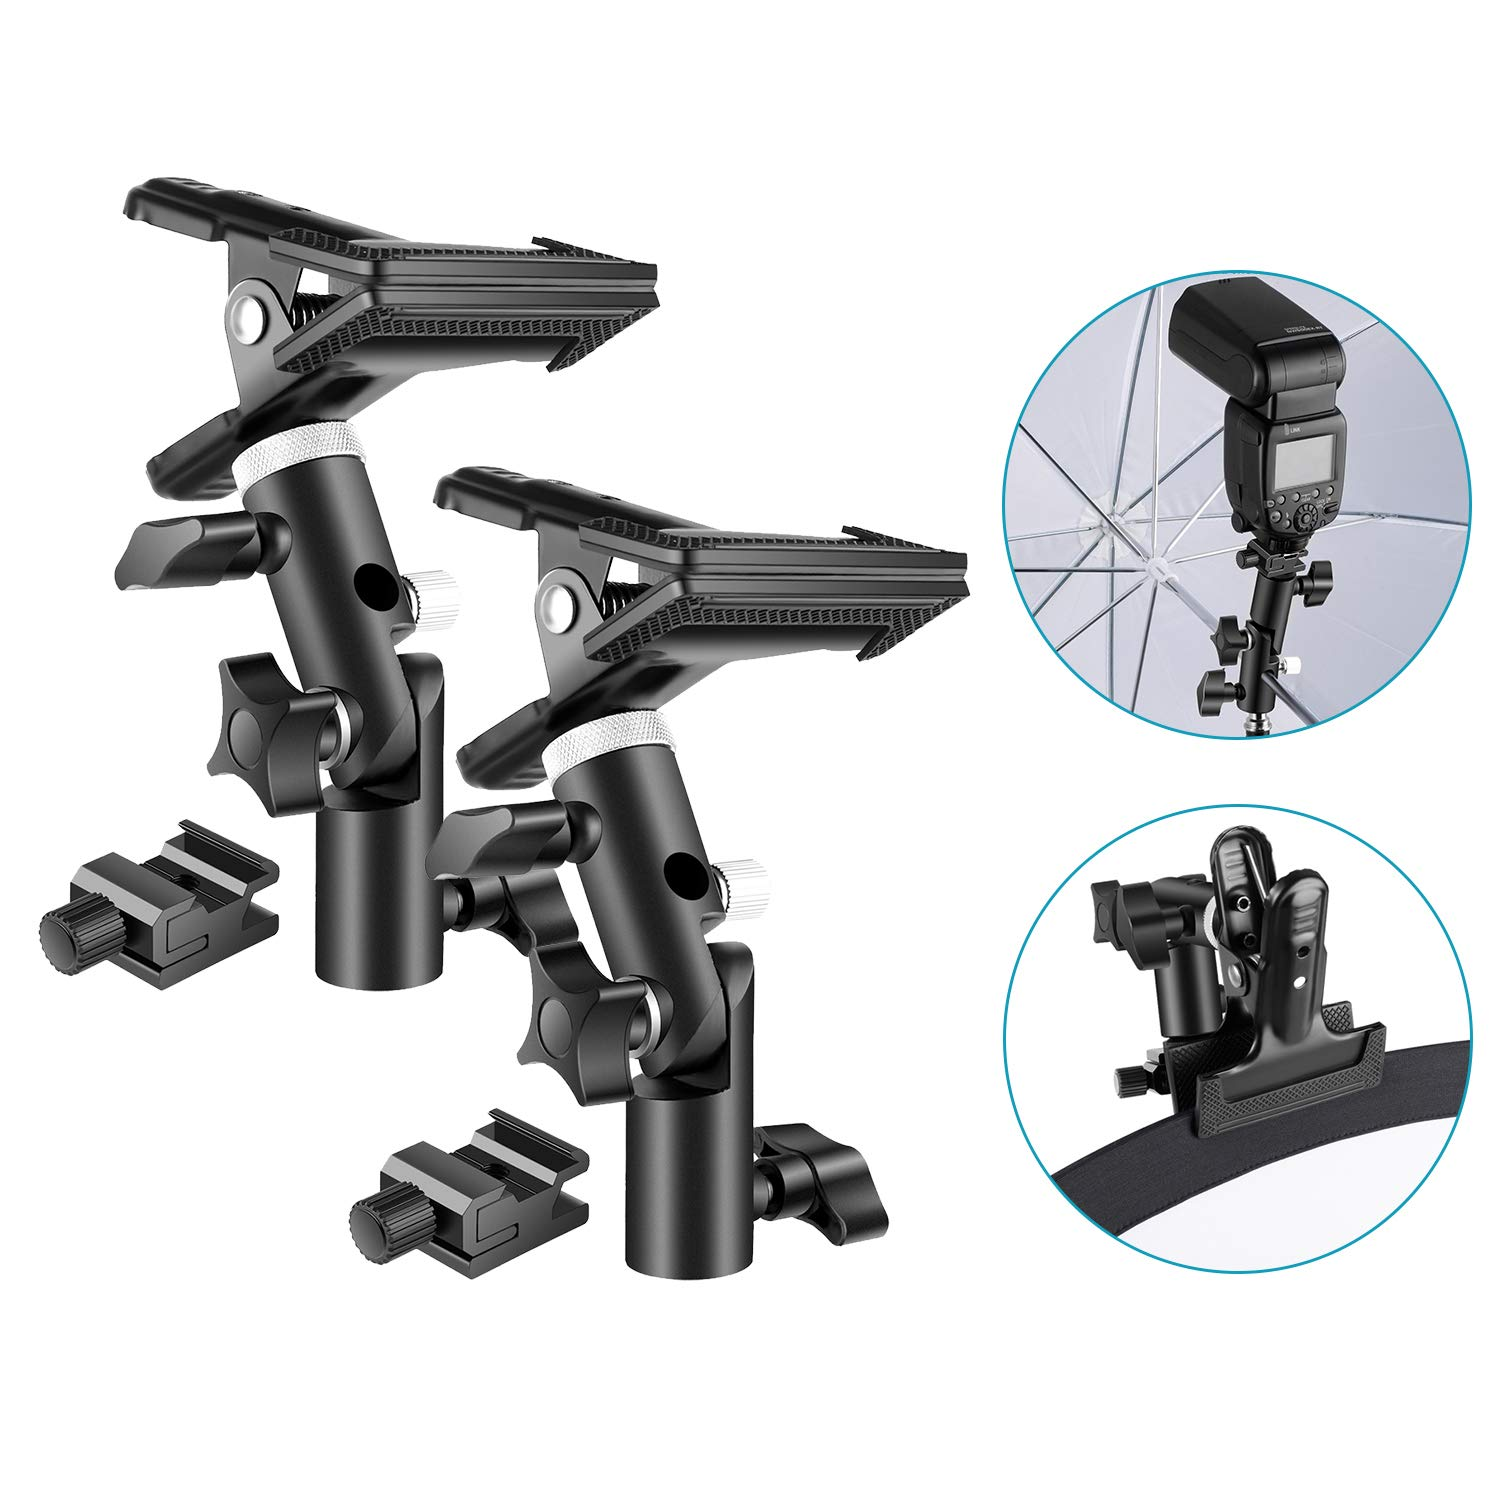 Neewer 2-Pack Photo Studio Heavy Duty Metal Clamp Holder and Cold Shoe Adapter for Clamping Reflector or Mounting Speedlite Flash and Umbrella on Light Stand by Neewer